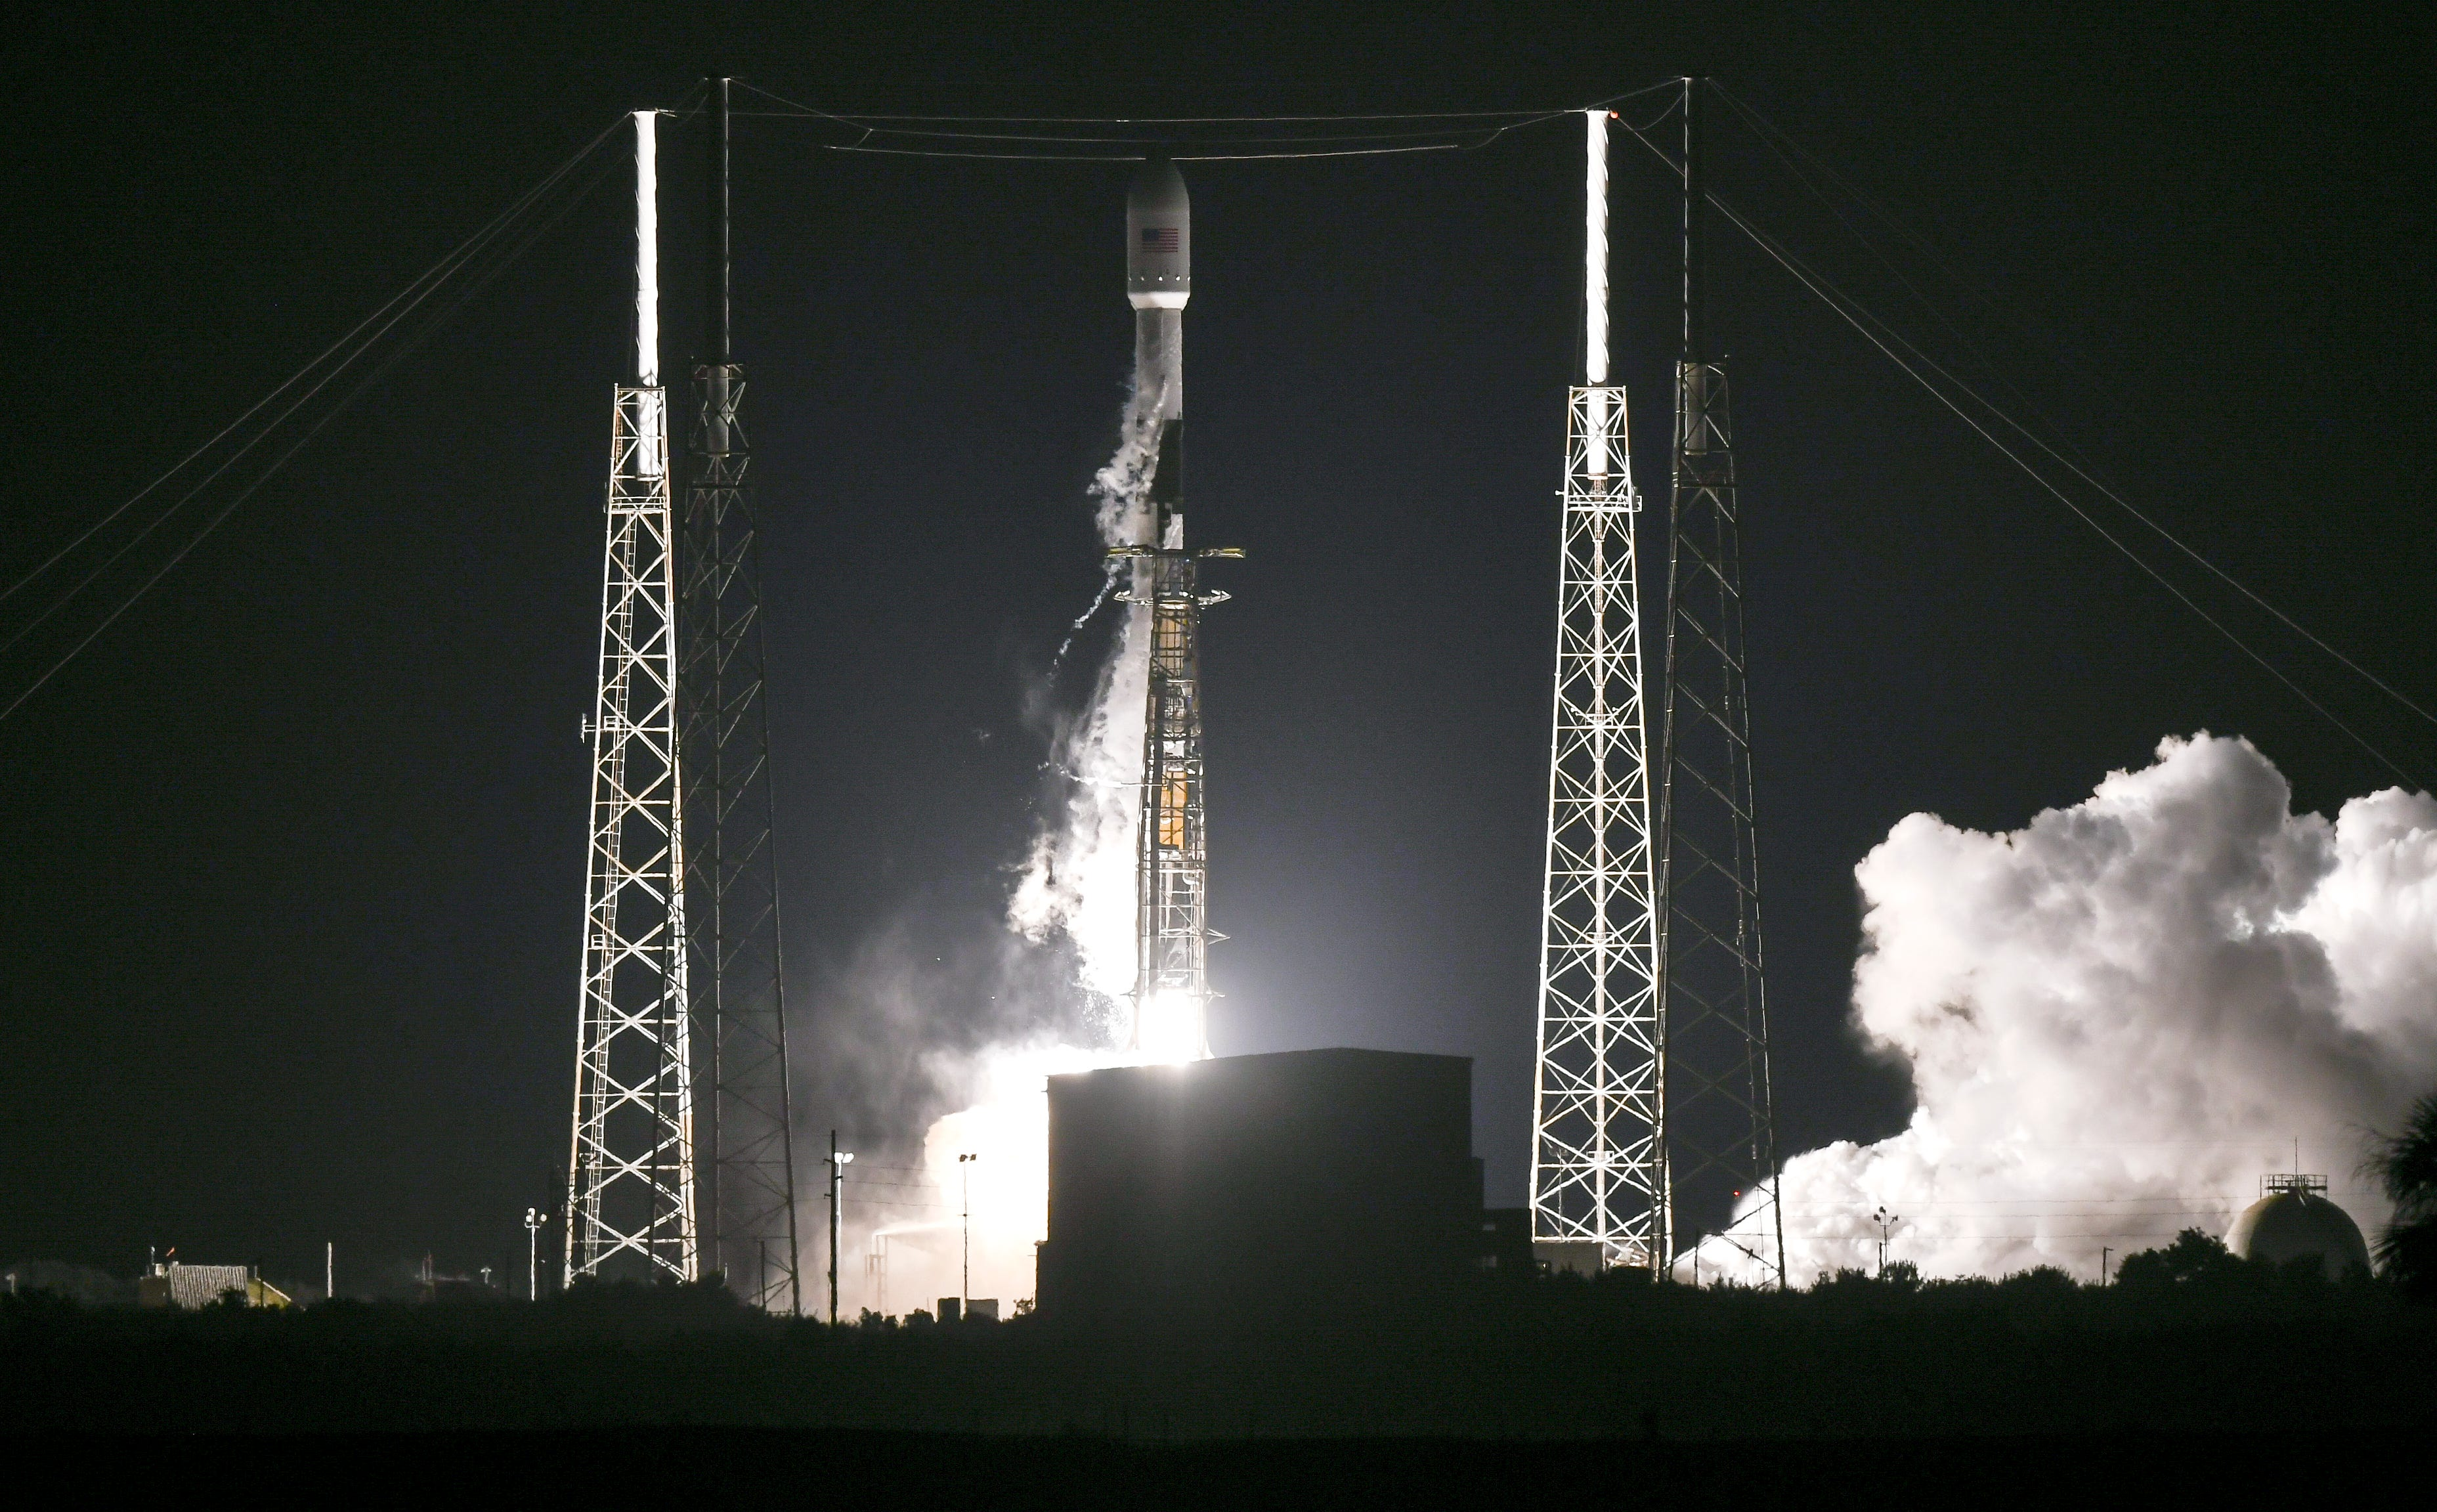 fba9c25b-ea16-4355-830d-9f7938abbe34-uscpcent02-71chjockszn1d8liukco_original Will SpaceX Falcon 9 rocket three-peat? Could be company's first to launch 3rd orbital mission